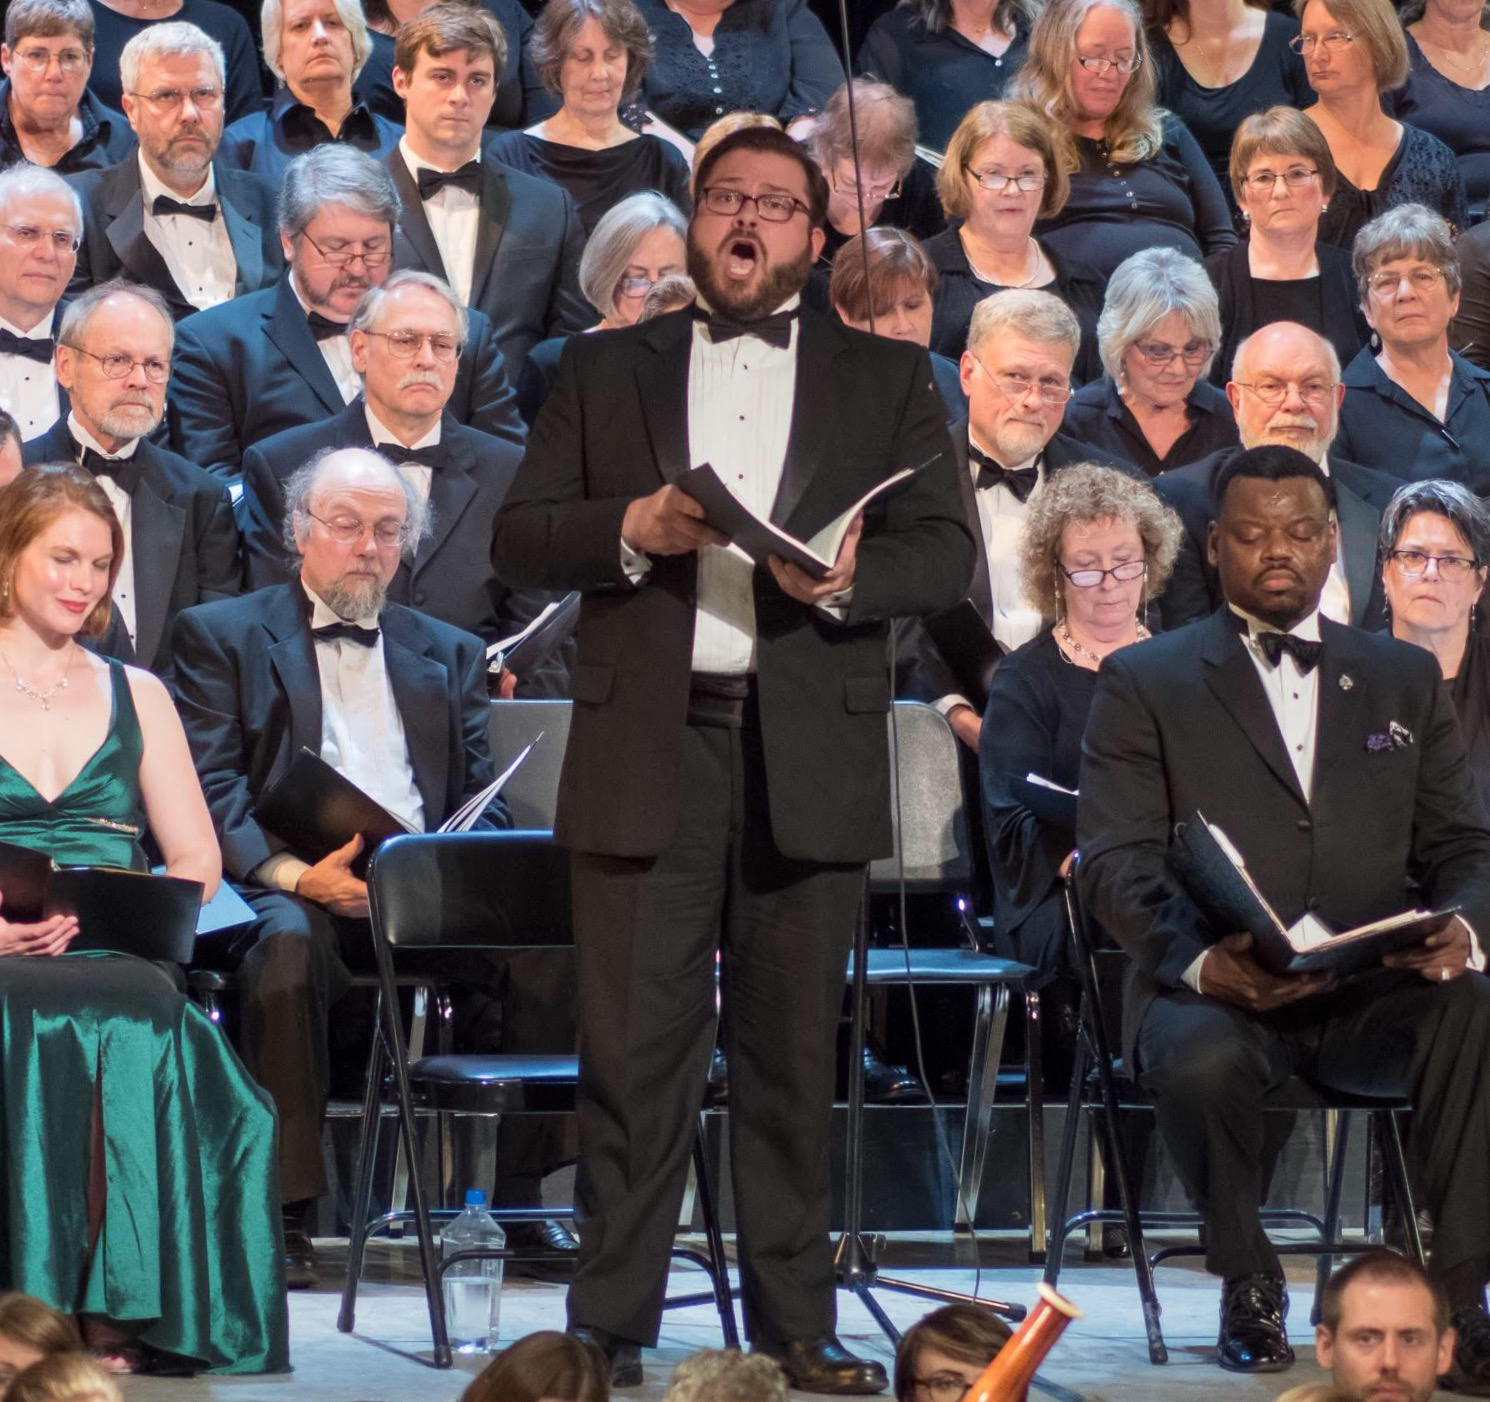 Verdi: Messa da Requiem, 2016